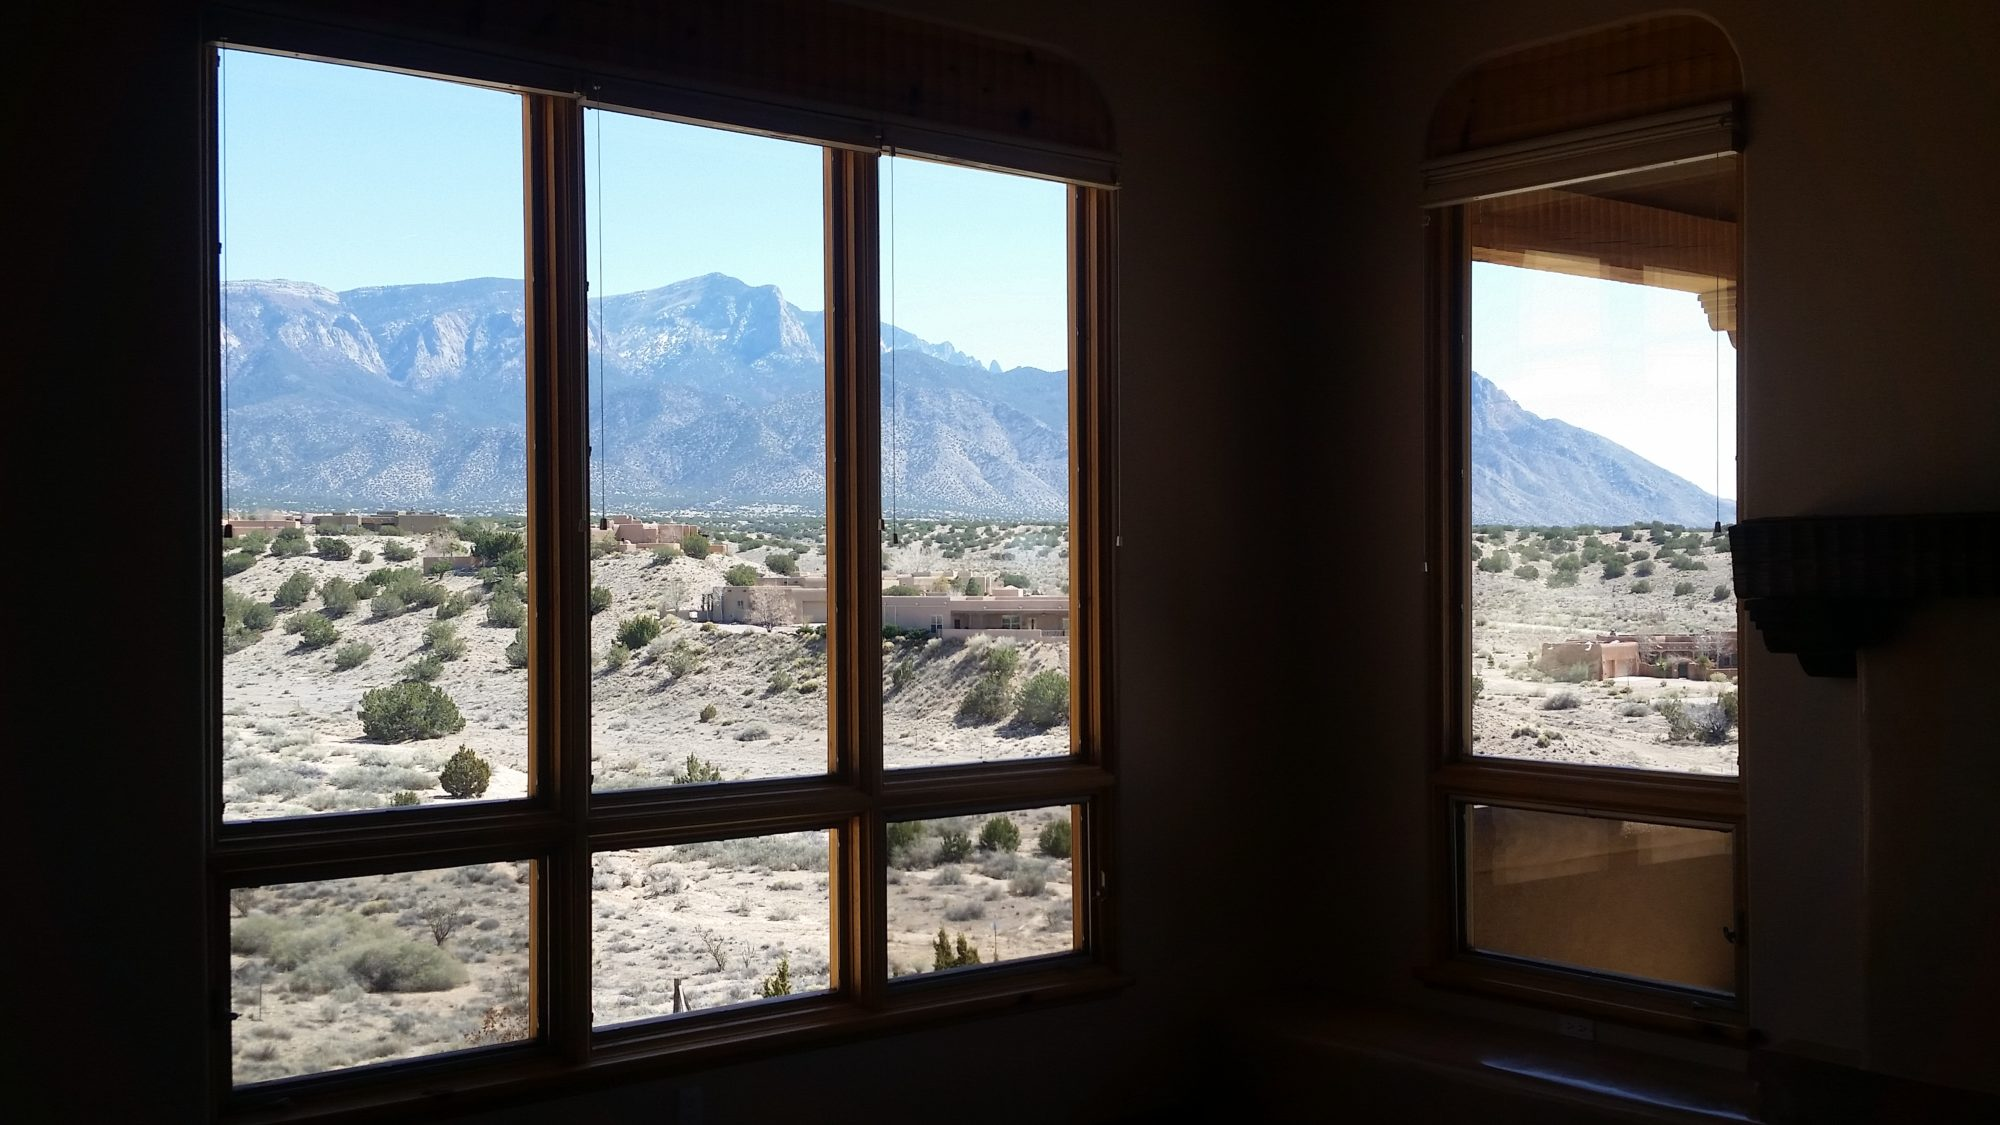 Window Cleaning Albuquerque NM